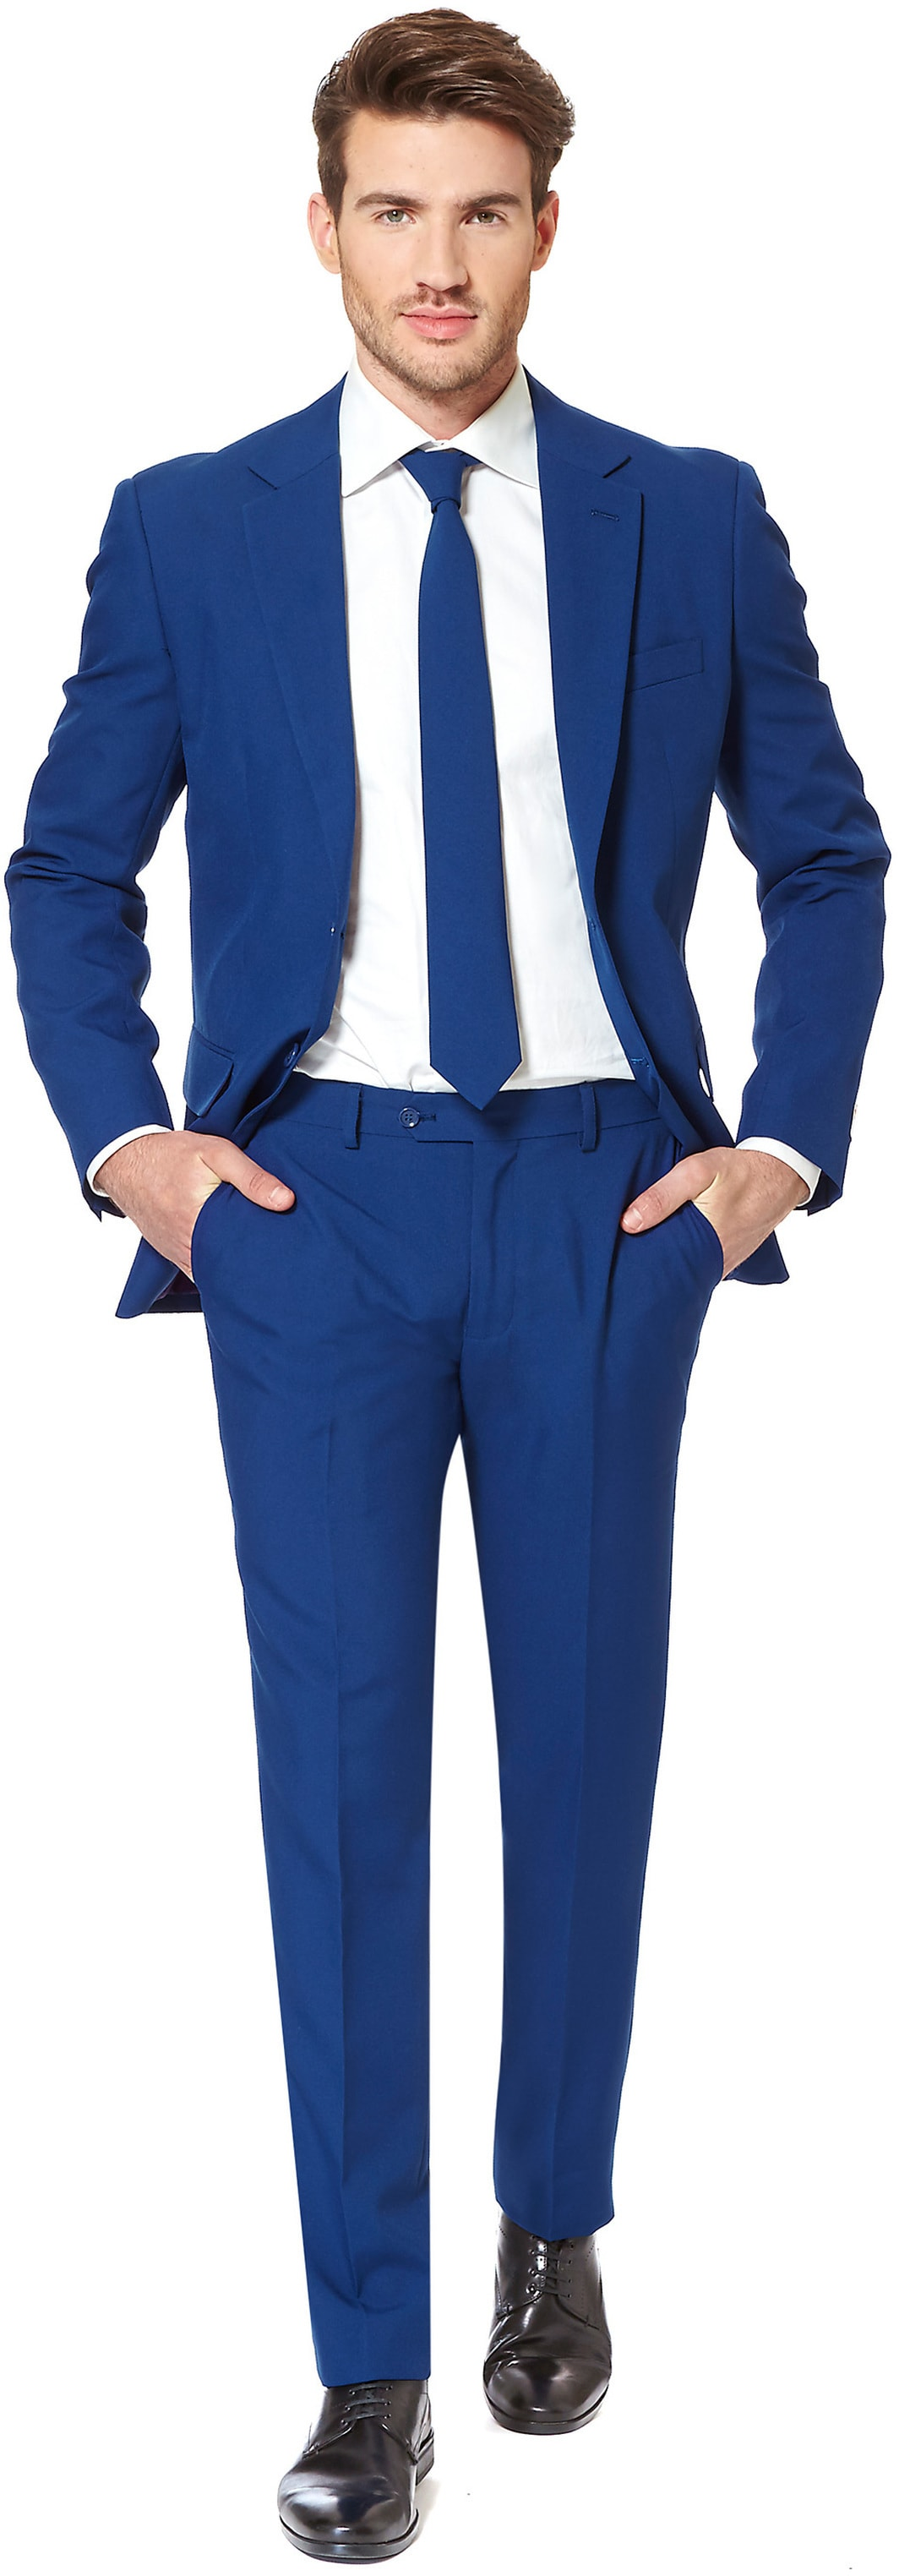 OppoSuits Navy Royale Suit foto 0